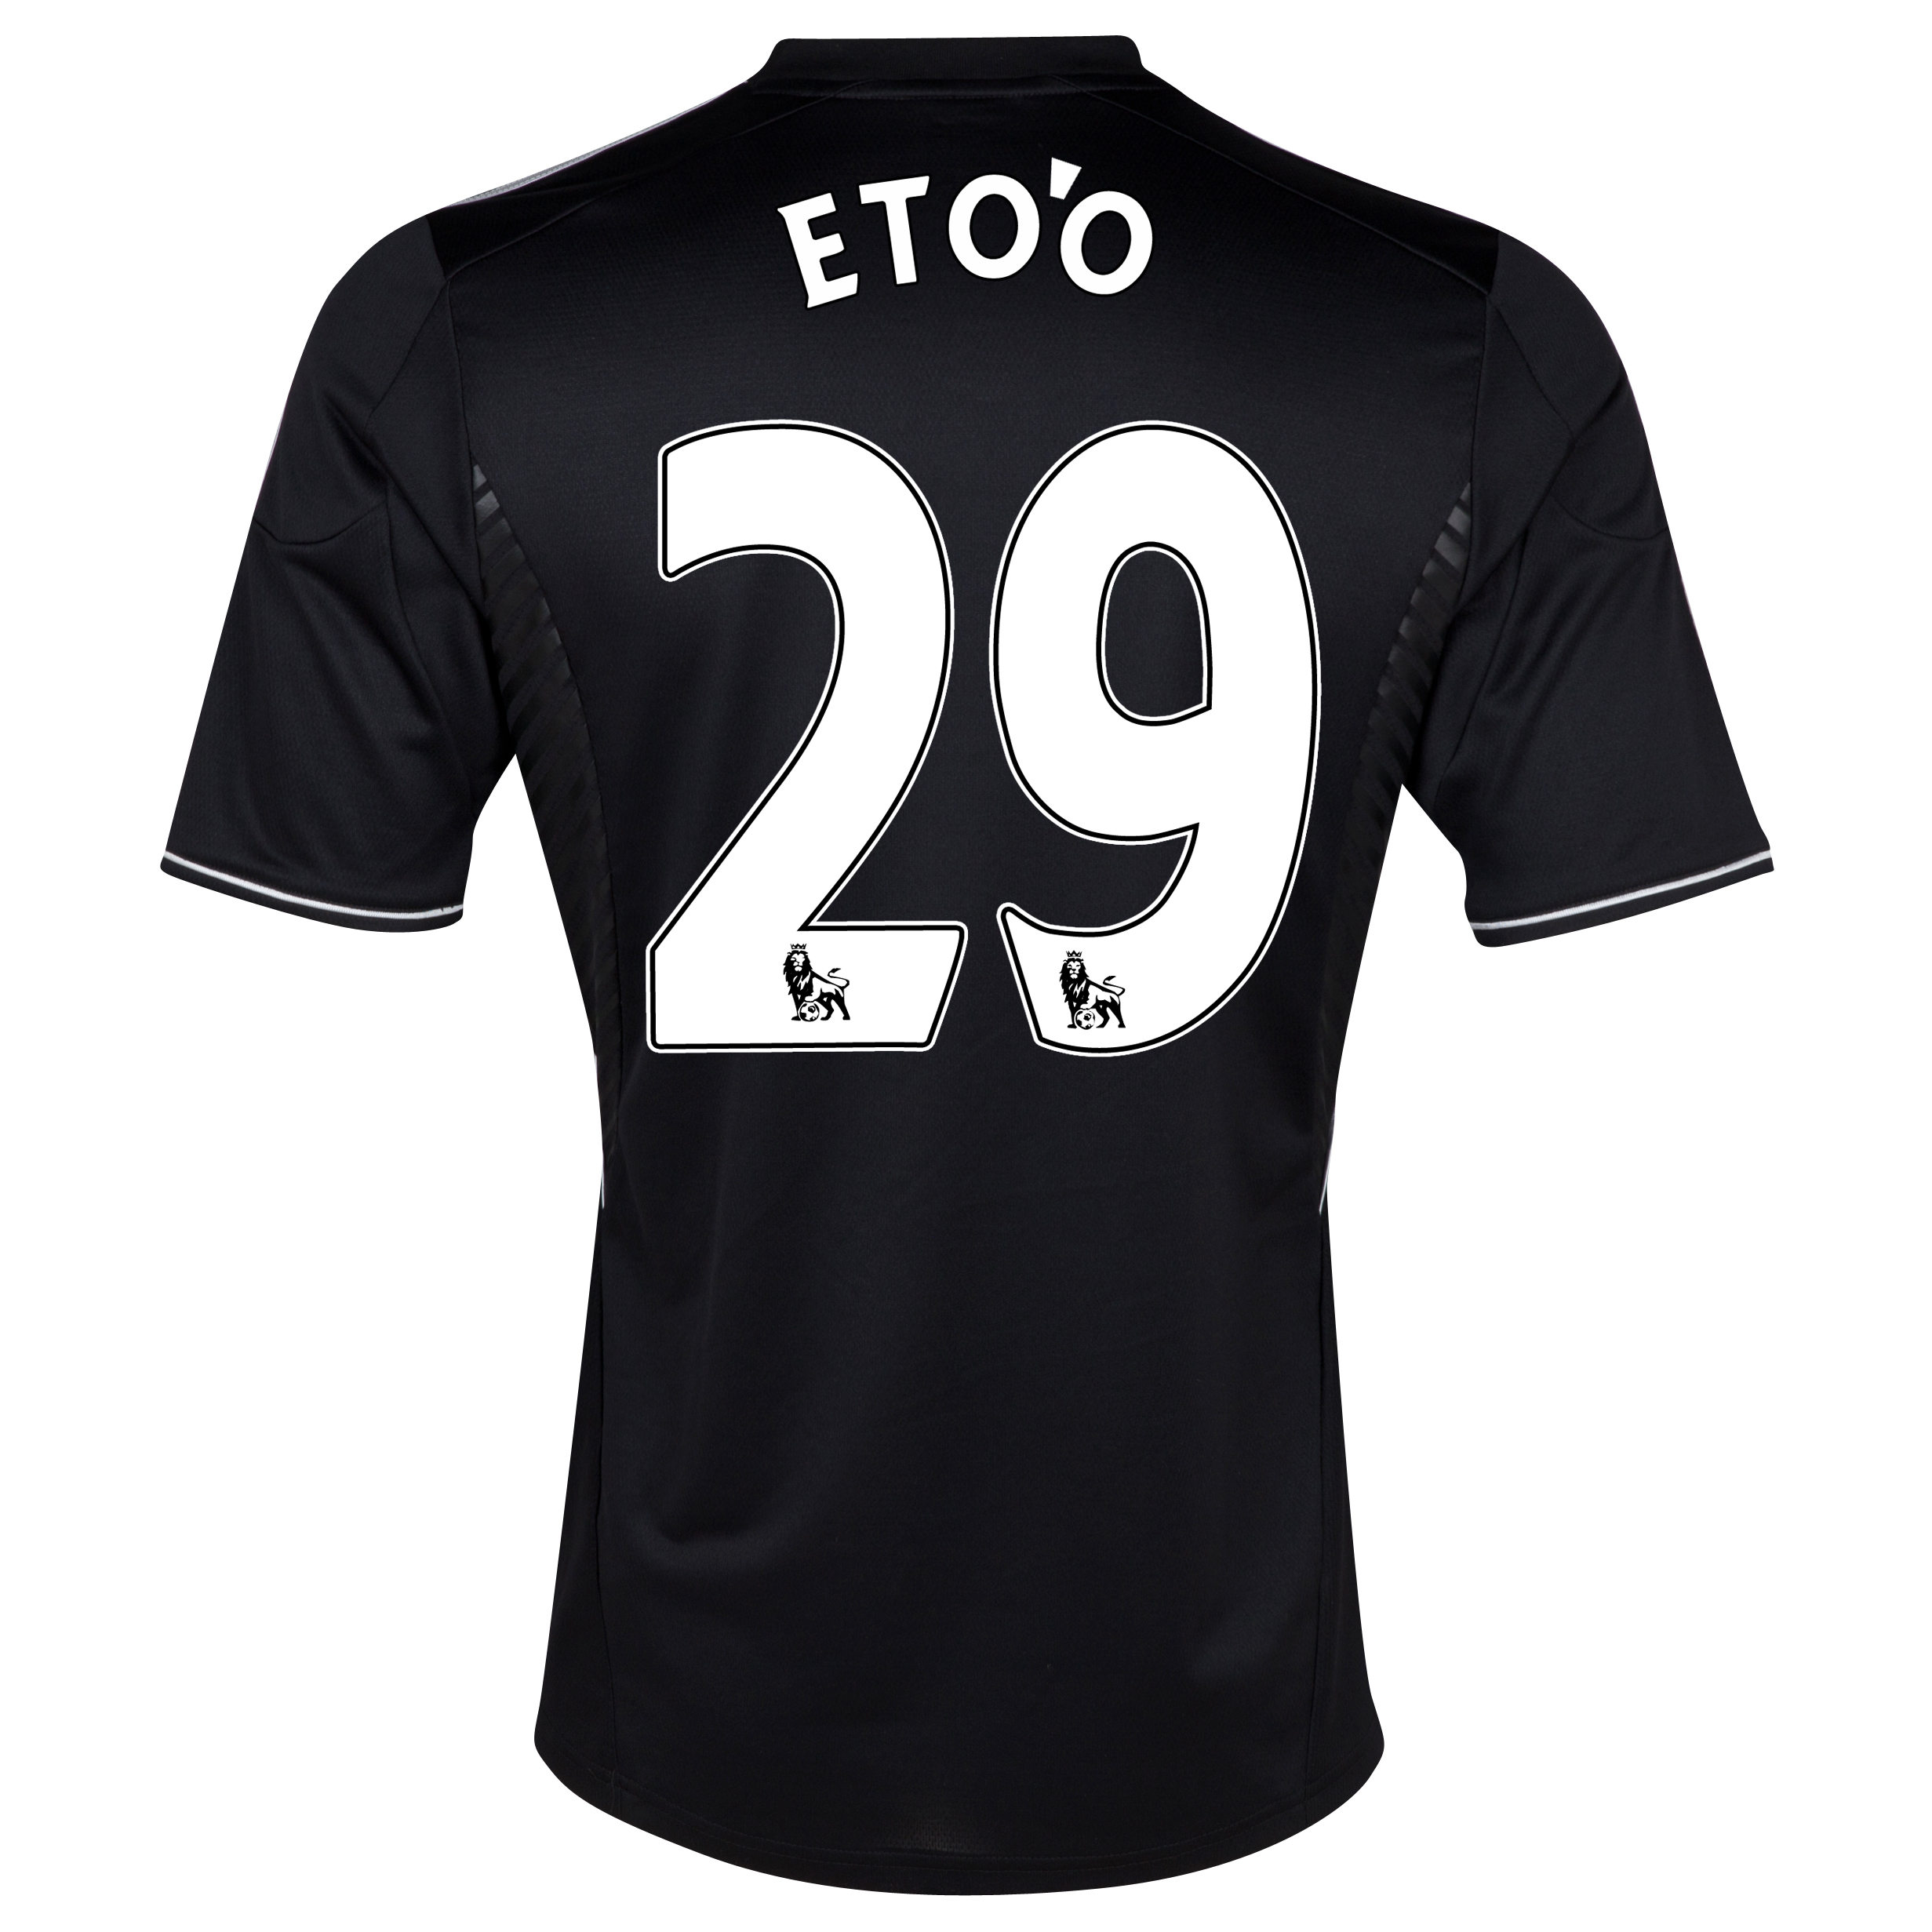 Chelsea Third Shirt 2013/14 - Kids with Eto'o 29 printing